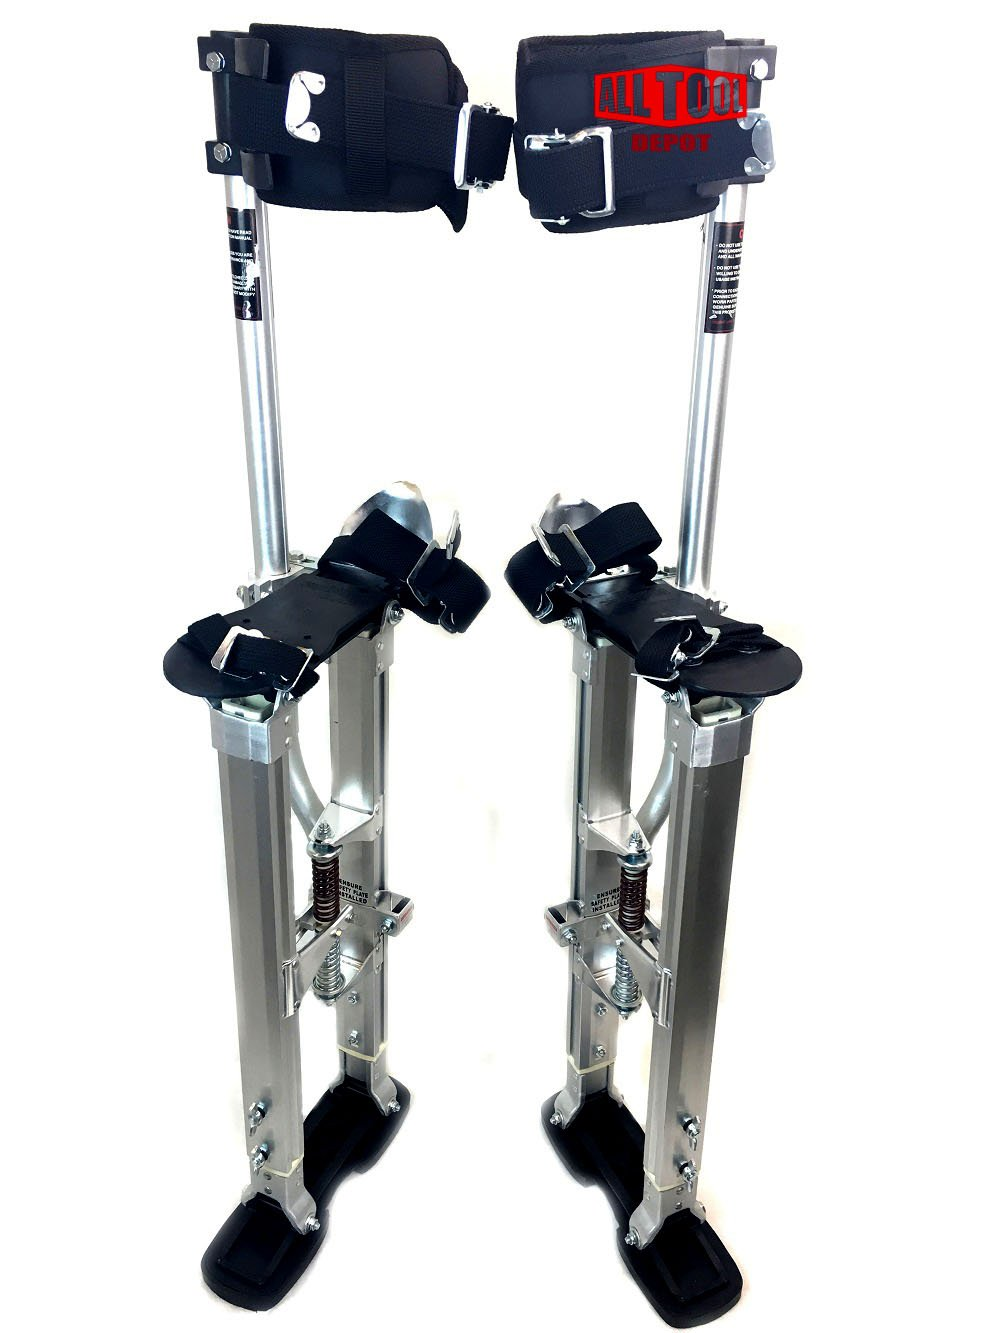 SurPro Quad Lock Aluminum Drywall Stilts, Adjustable Height 18-30 in. (SUR-SP-1830AP)